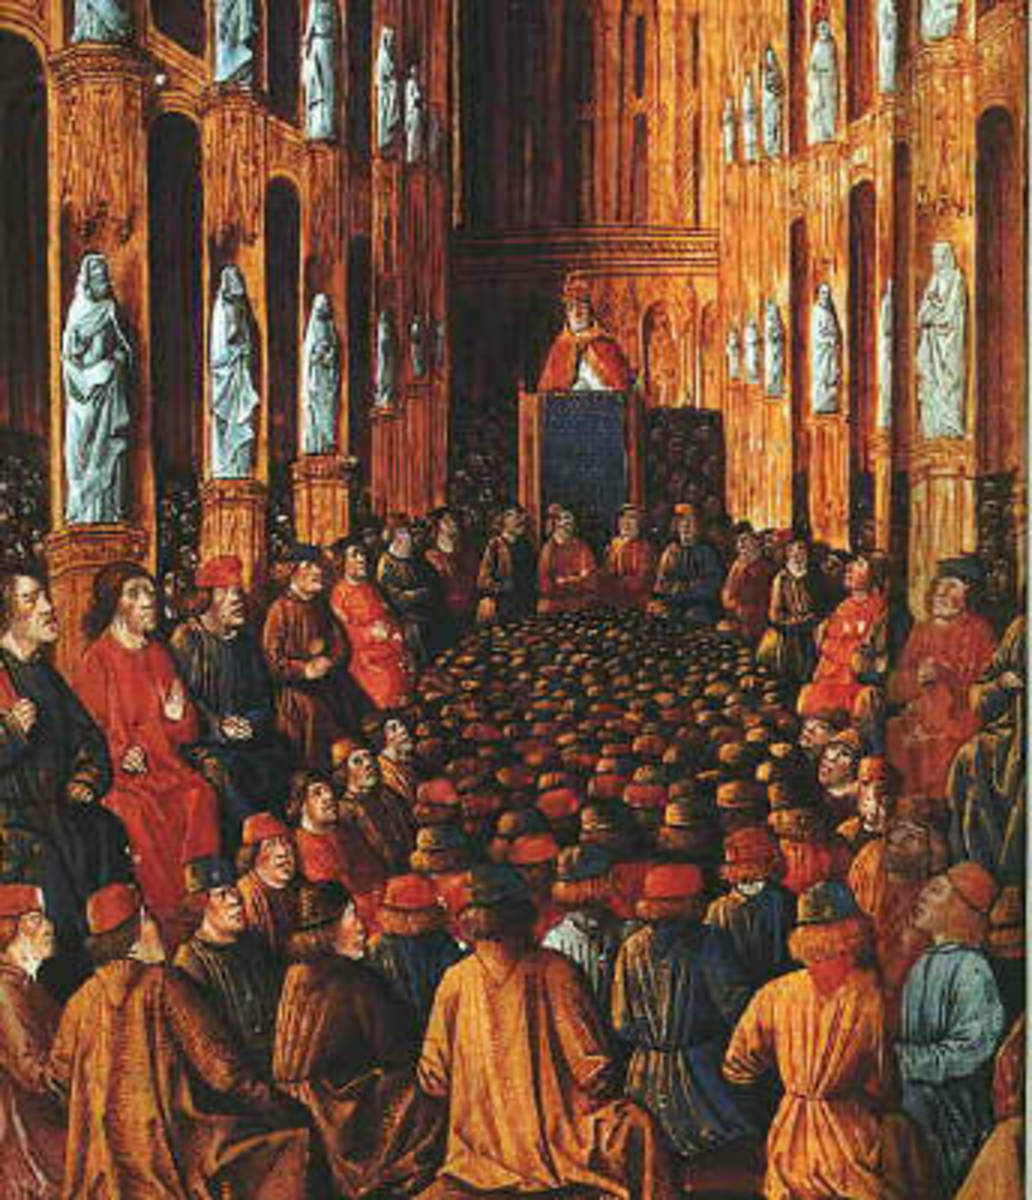 Manuscript illumination dating around 1490 showing Pope Urban II at the Council of Clermont (1095), where he preached the First Crusade.  The catholic church and the papacy were very powerful in the feudal period, often rivaling or usurping royalty.